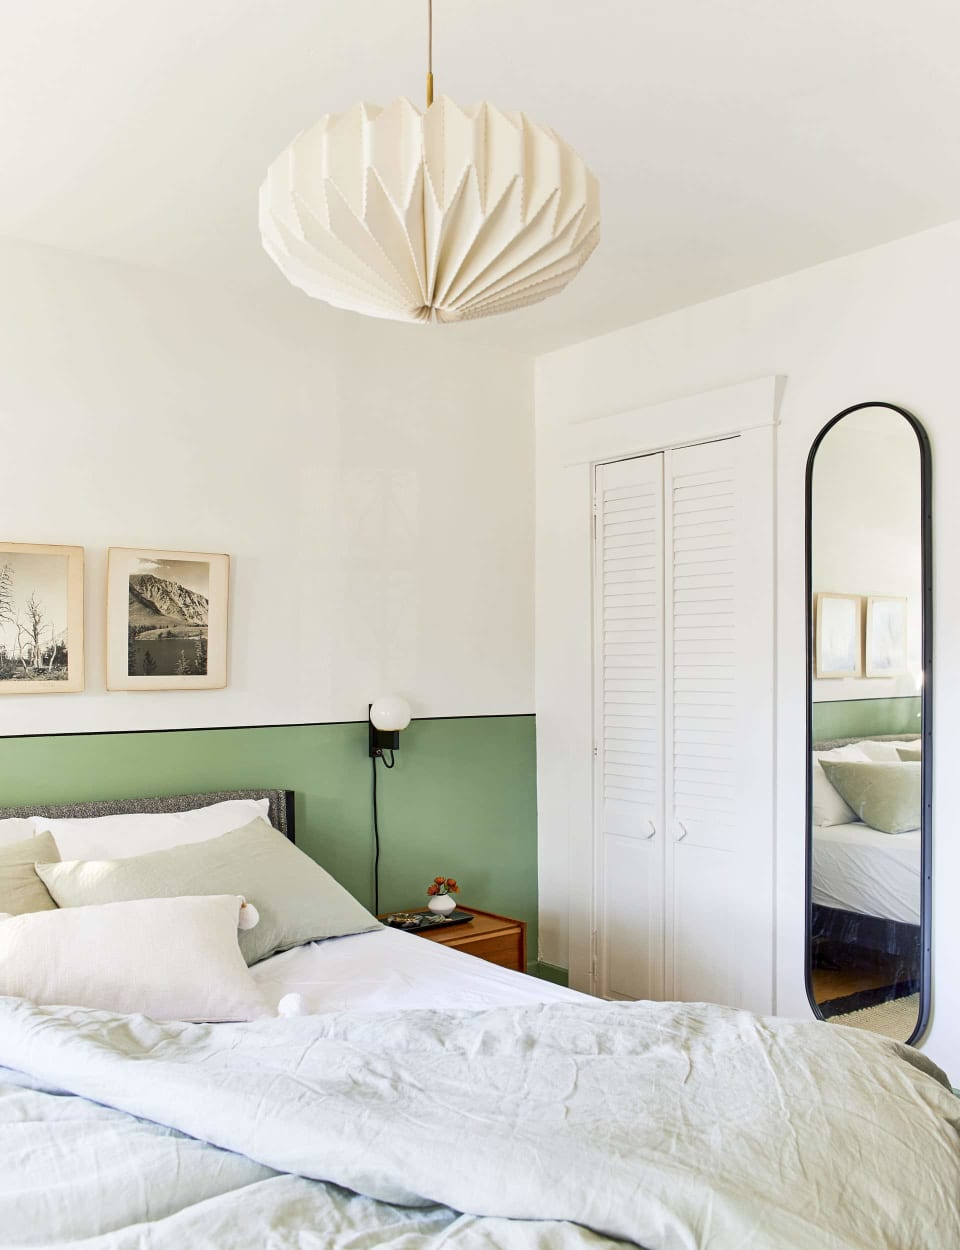 Julie Rose wall-to-wall wainscoting behind the headboard